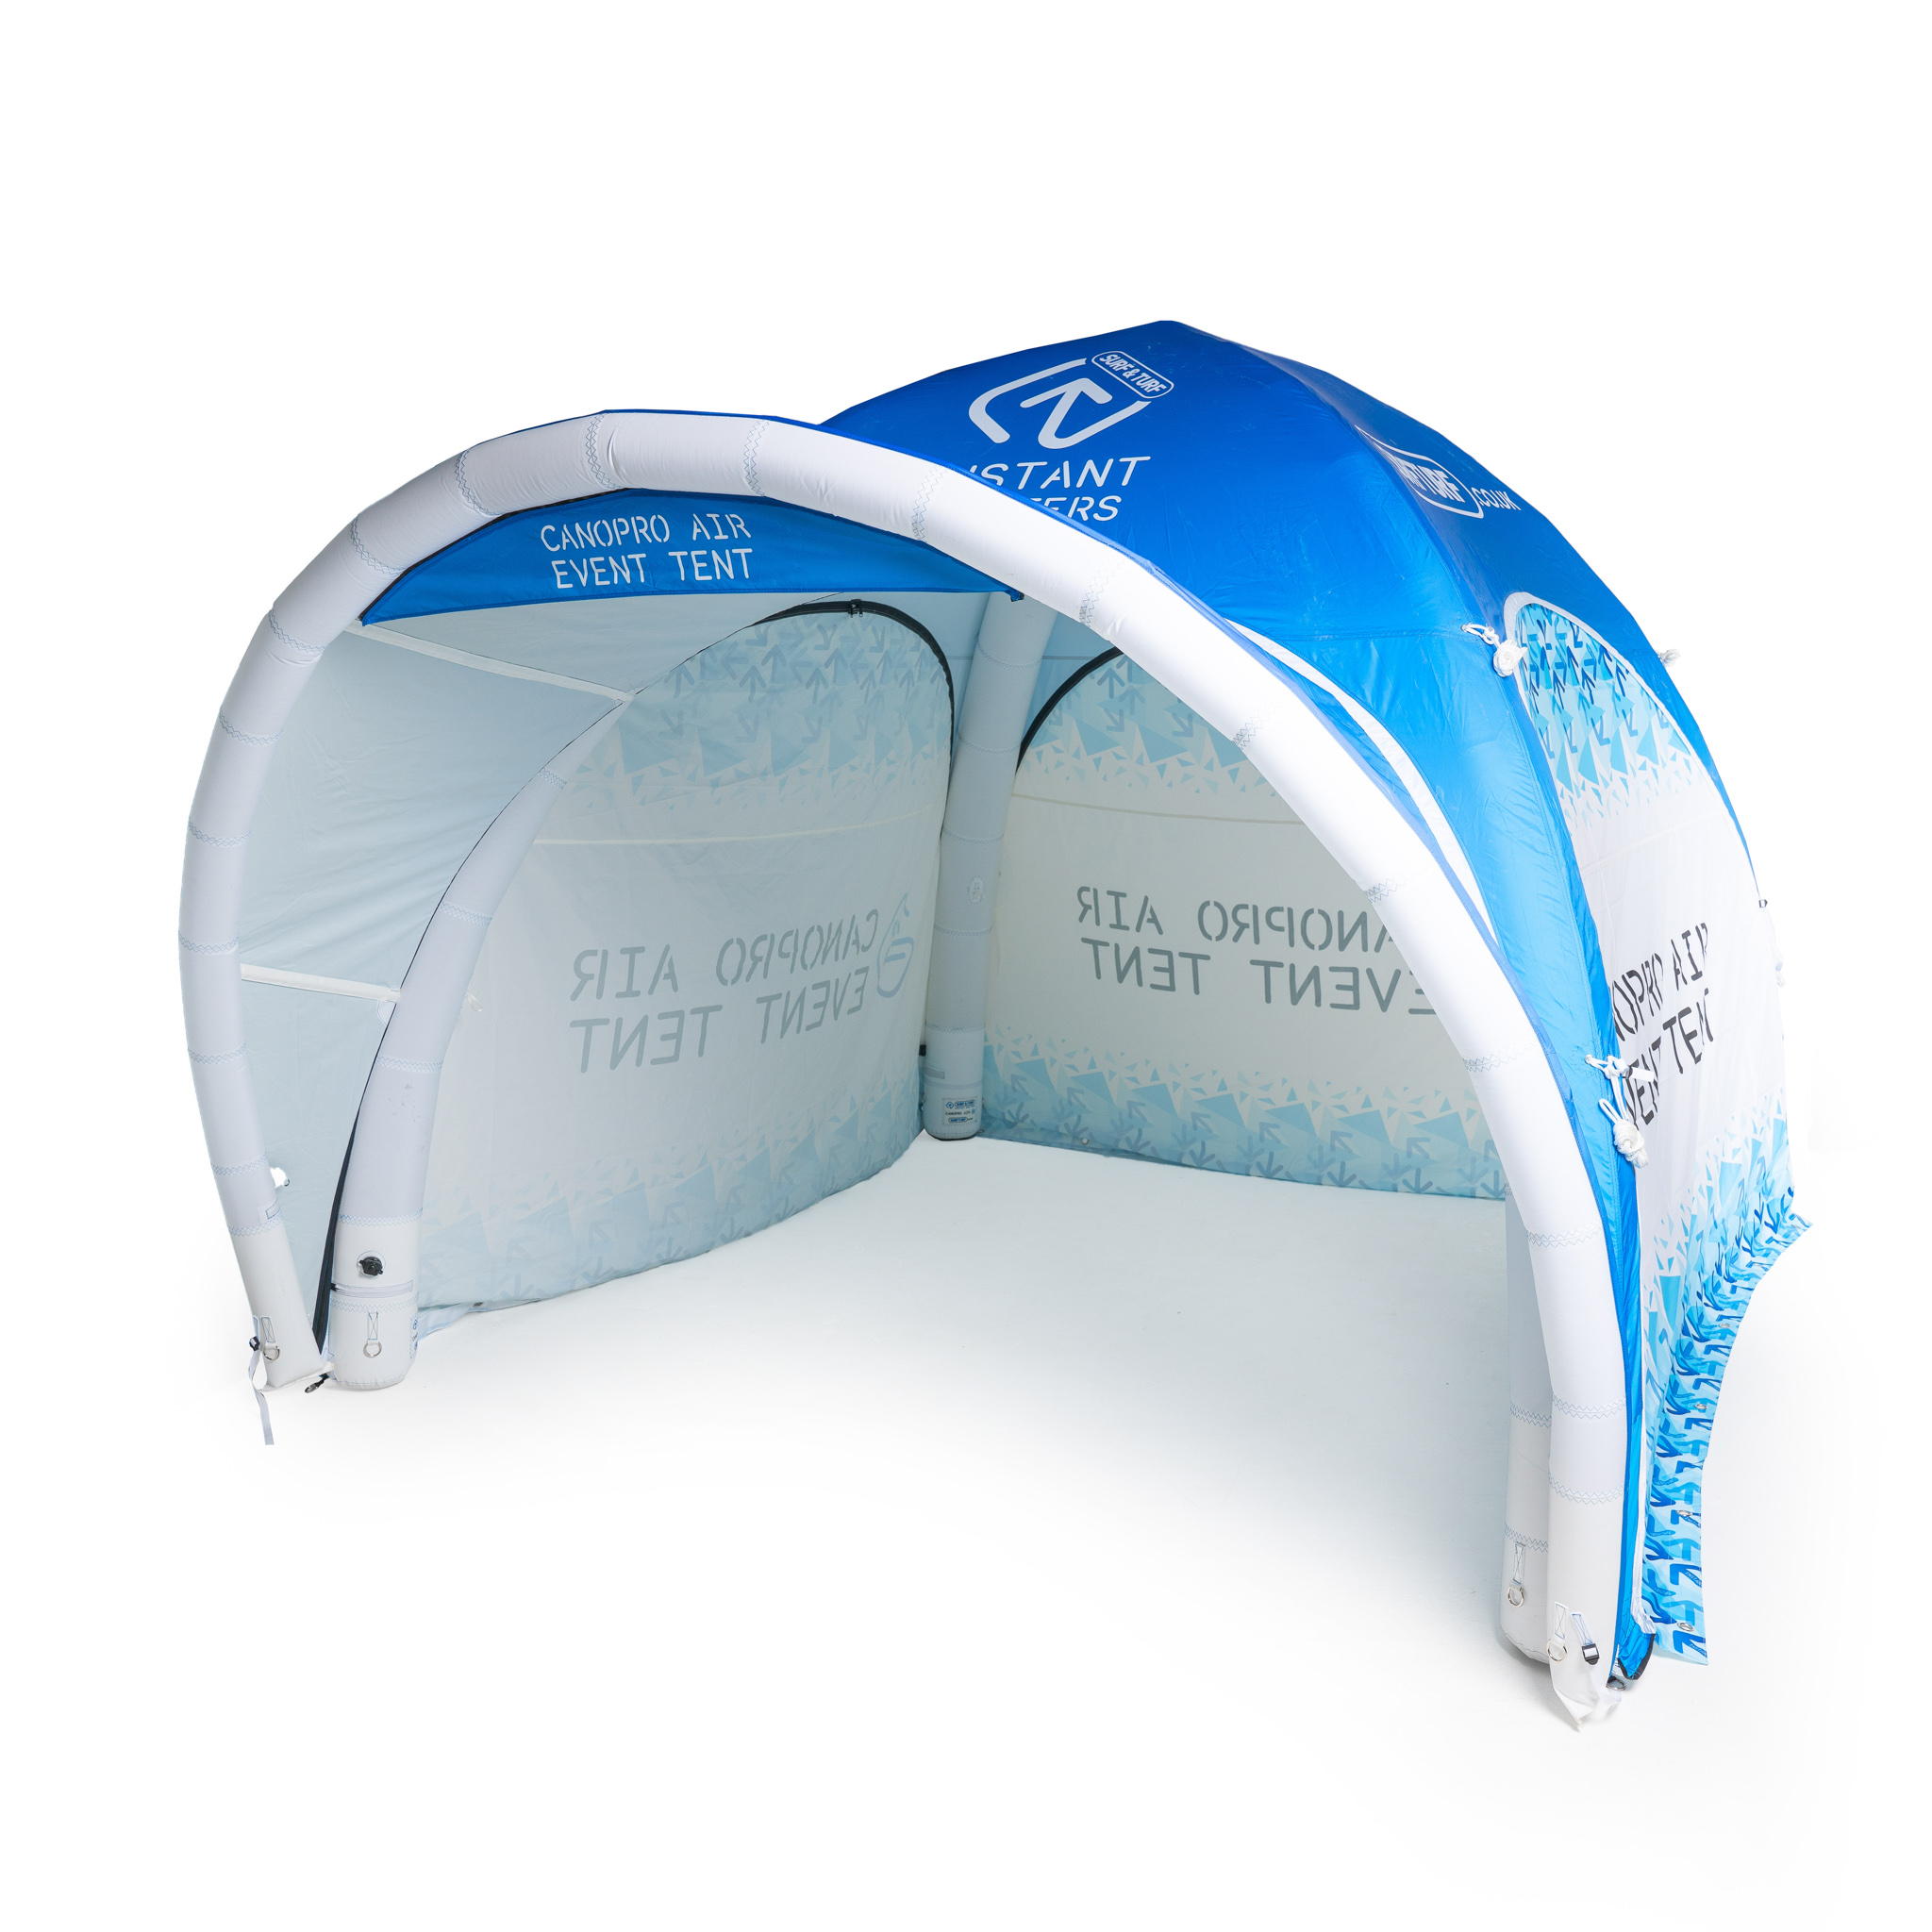 Hassle free instant advertising shelters